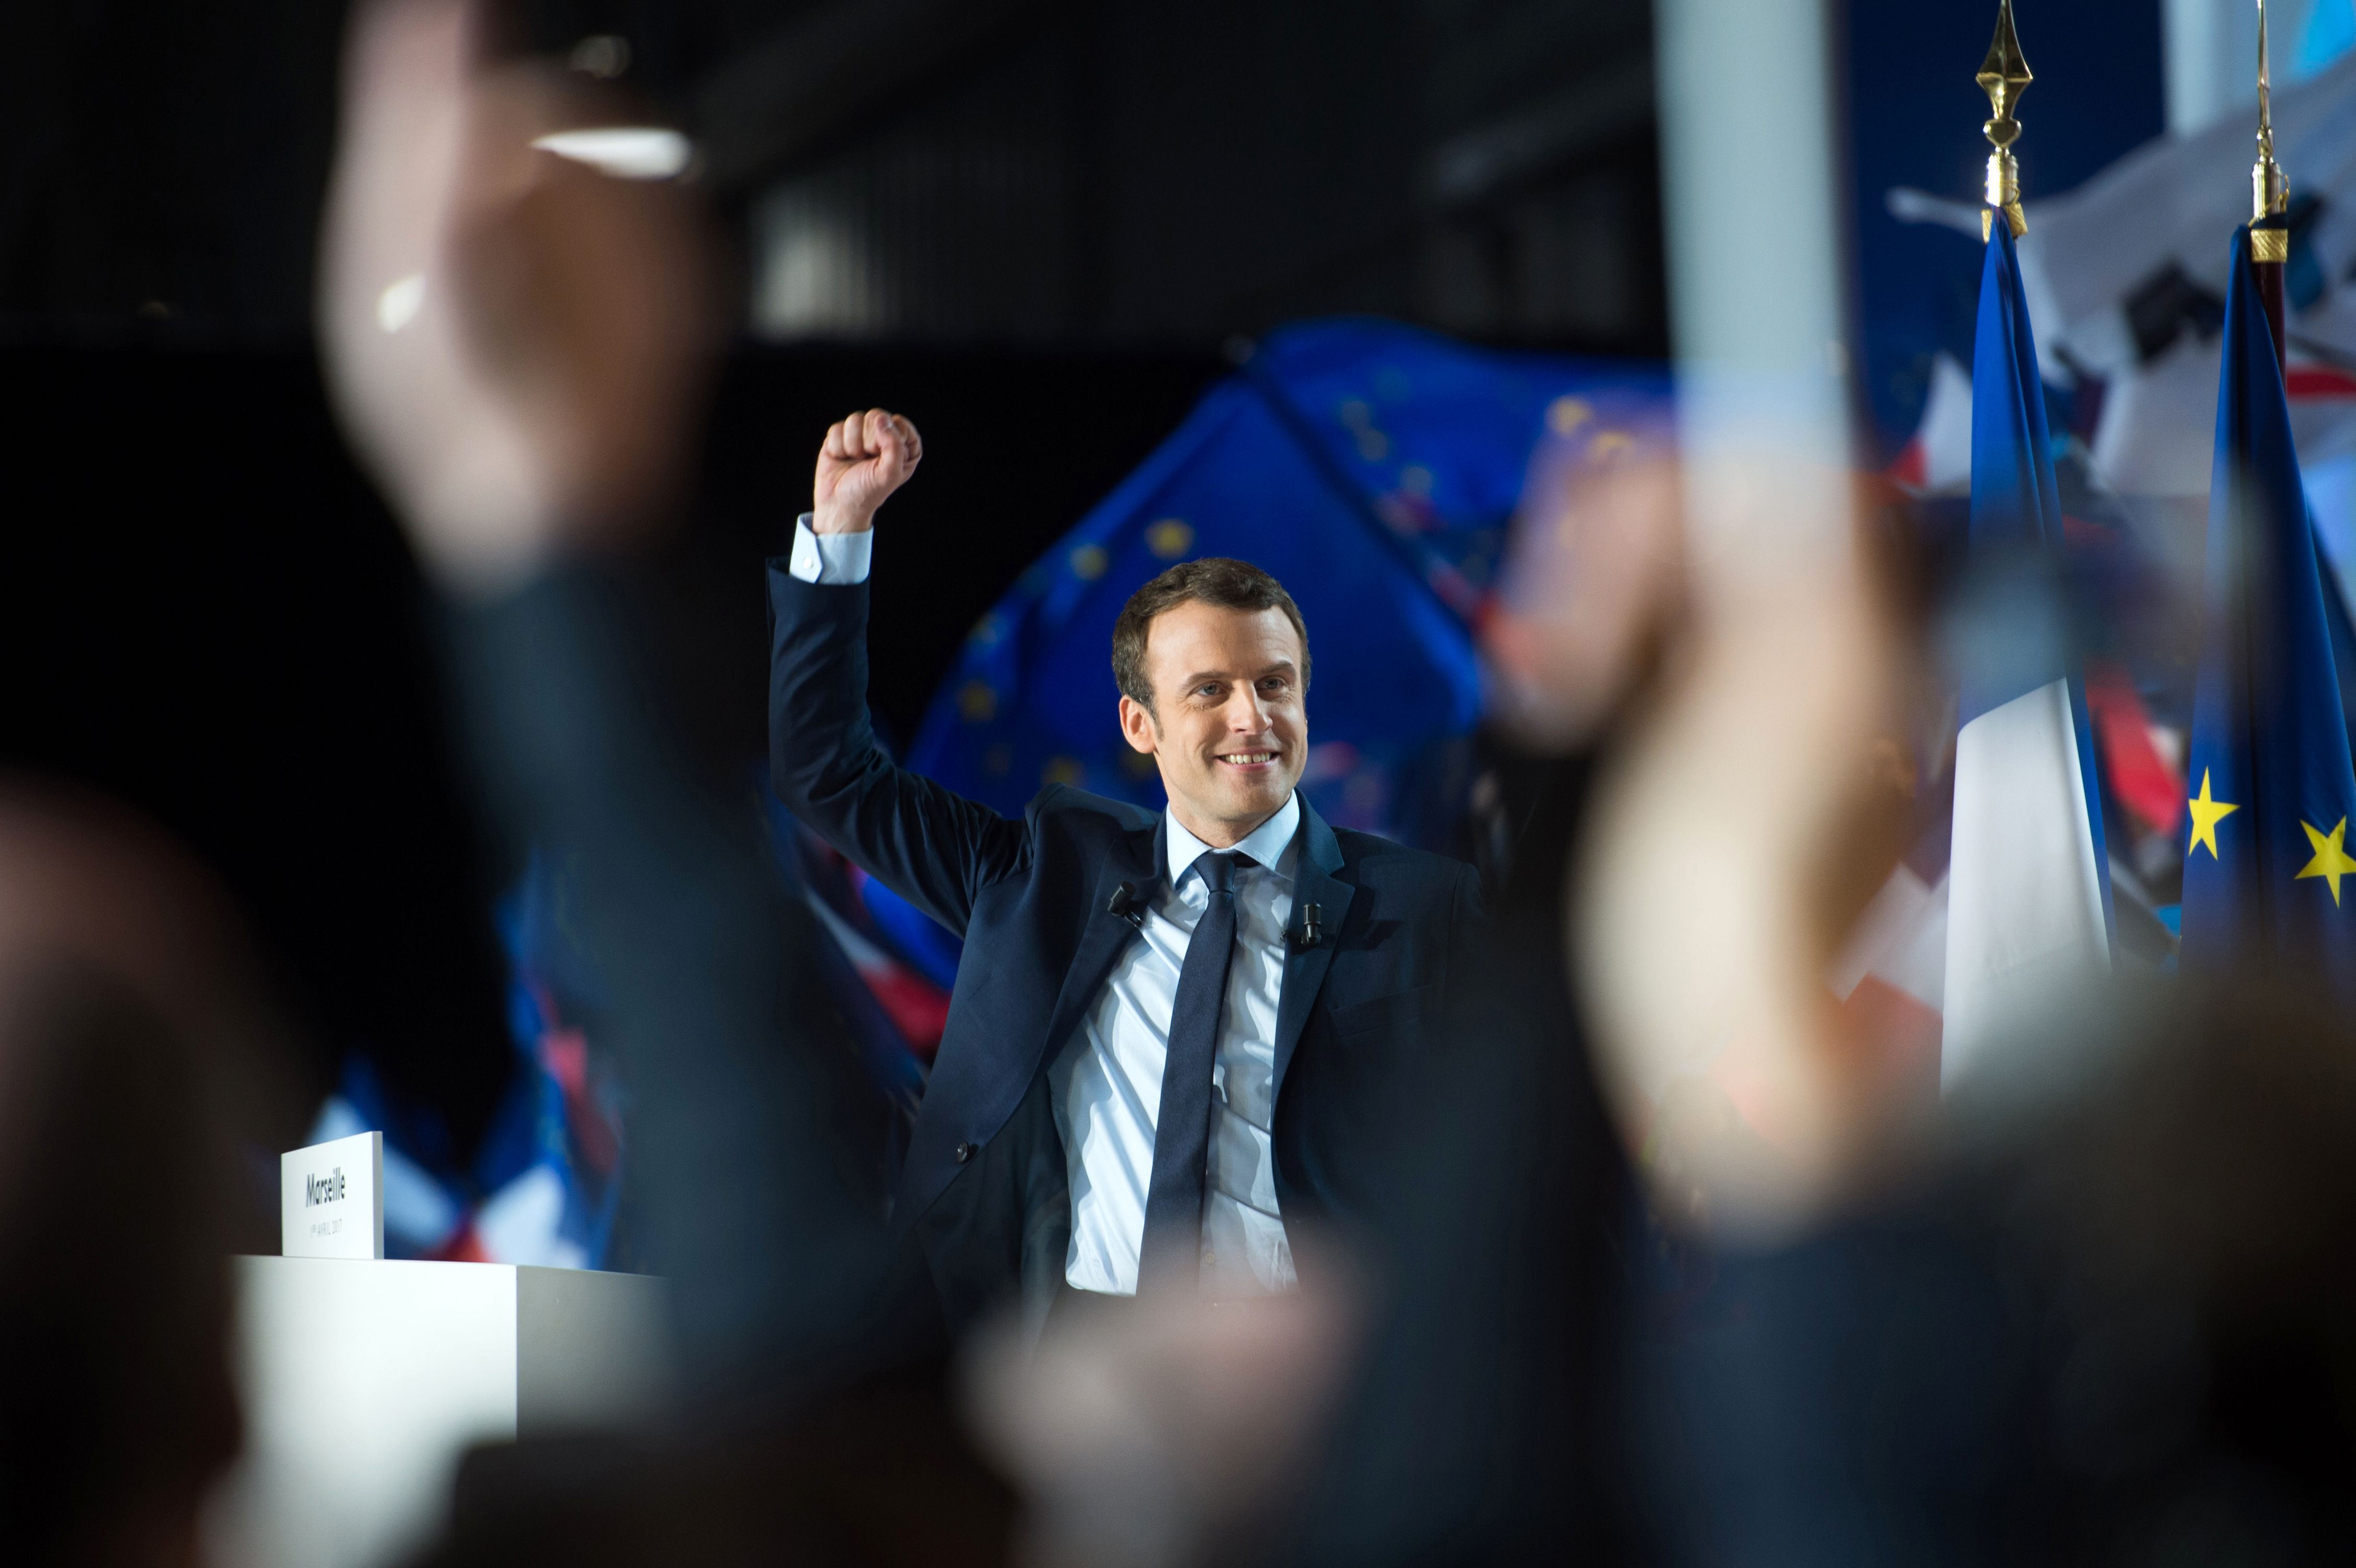 TOPSHOT - French presidential election candidate for the En Marche ! movement Emmanuel Macron raises his fist in the air during a campaign meeting in Marseille, southern France, on April 1, 2017. / AFP PHOTO / BERTRAND LANGLOIS / TT / kod 444